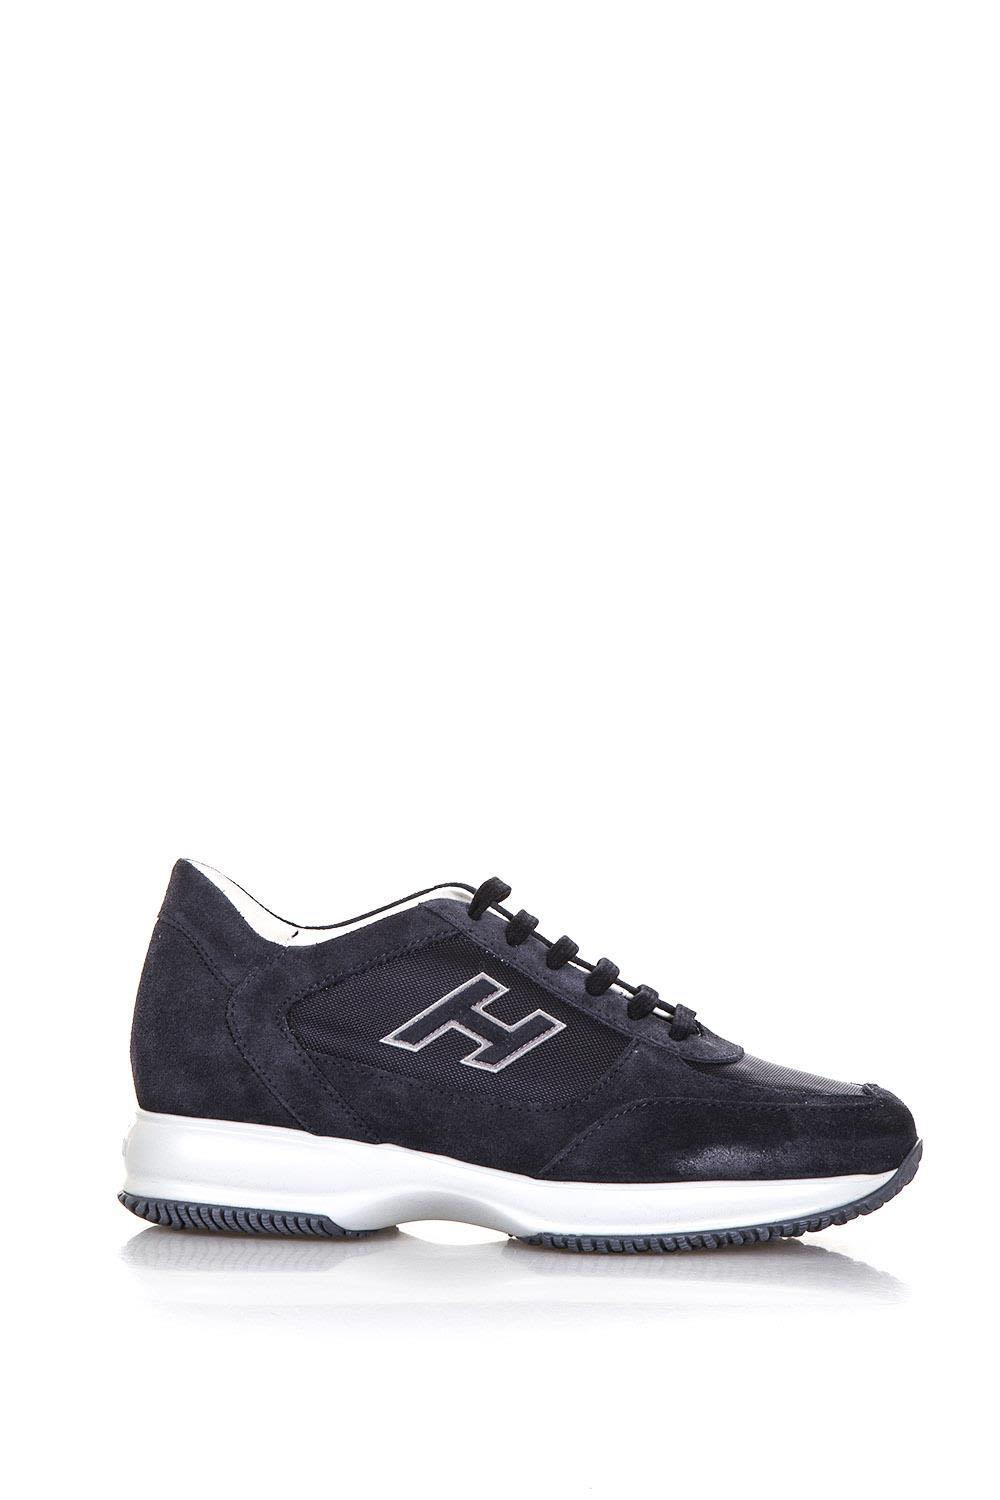 Hogan Interactive Night Blue Suede Sneakers